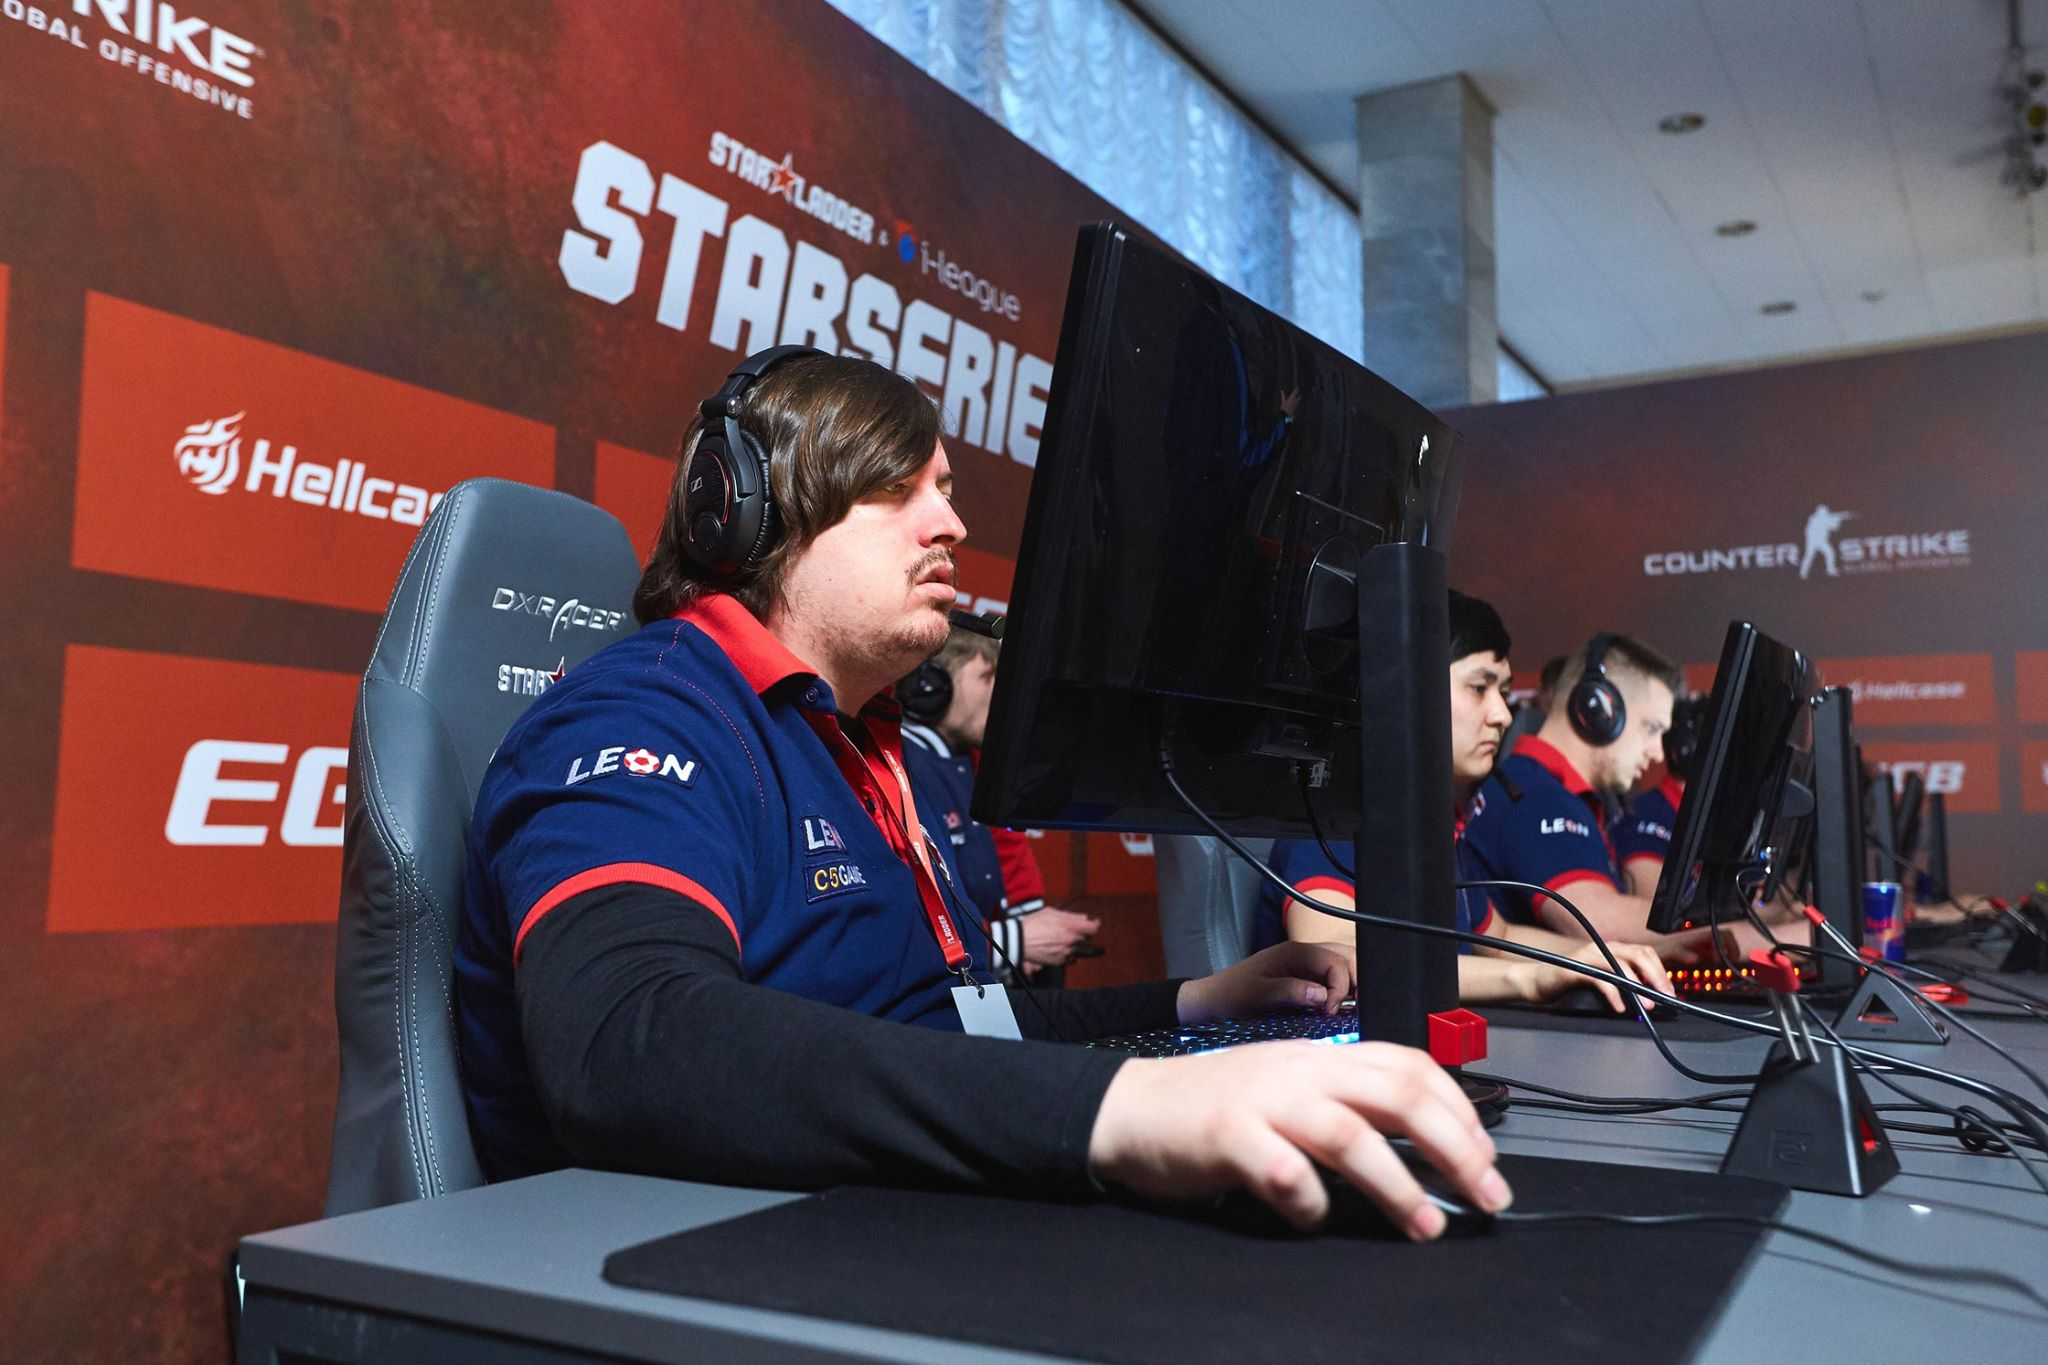 Gambit recently took 12-14 (of 16) at Starseries Season 3 (image courtesy of Gambit Esports on Facebook)